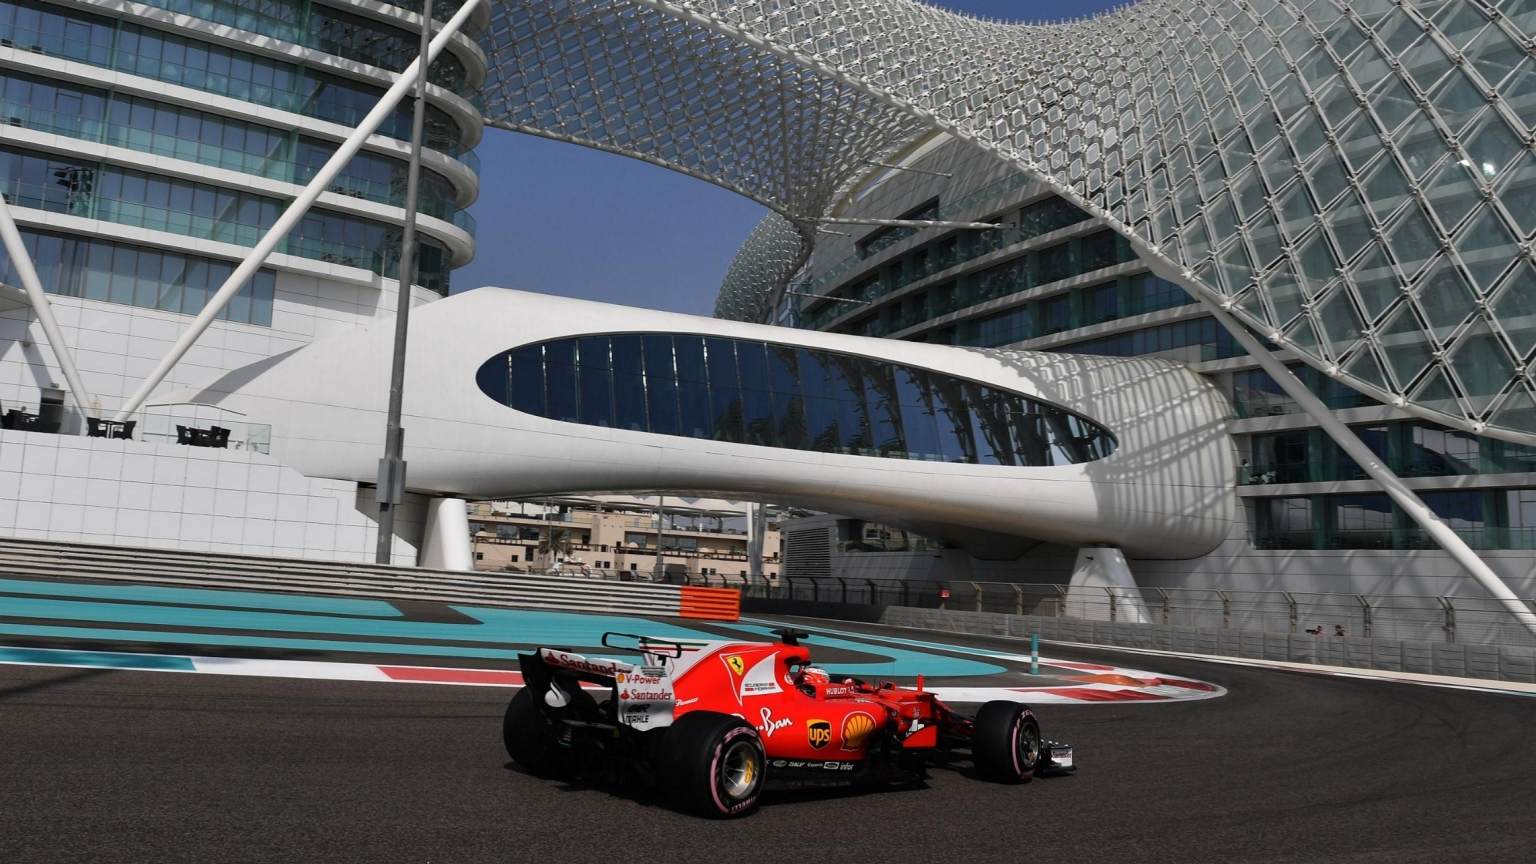 Abu Dhabi November 2014 Line Circuit Blog Raikkonen Fastest 100 Laps For Kubica In Test